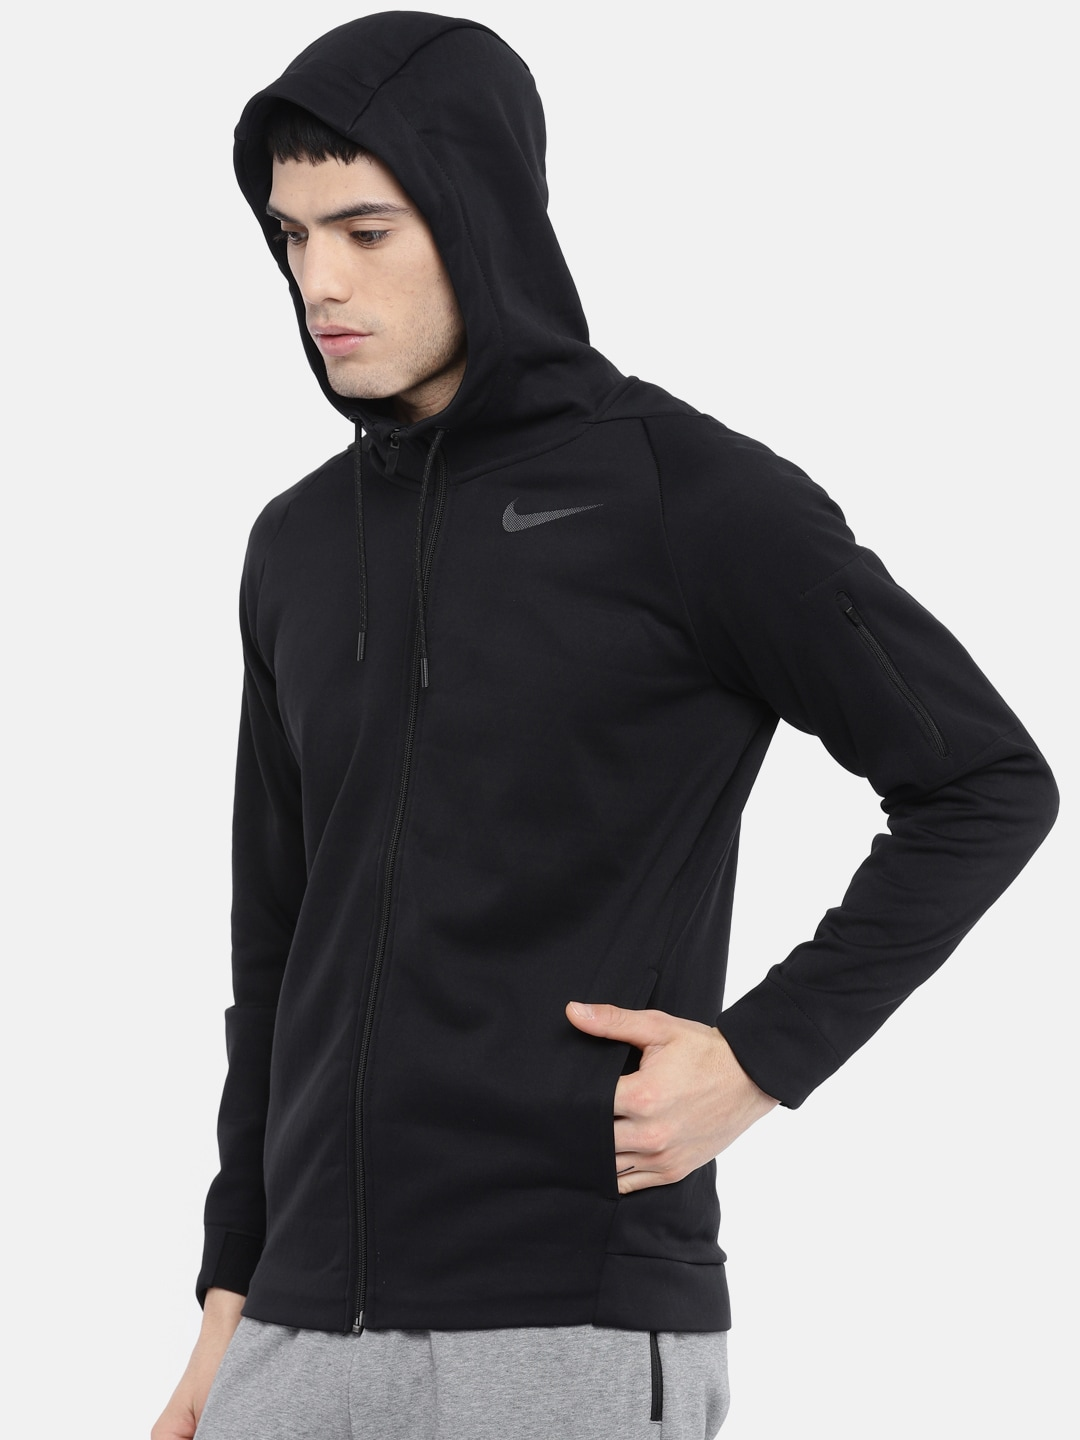 0d49711e7f6c Nike Jackets - Buy Nike Jacket for Men   Women Online